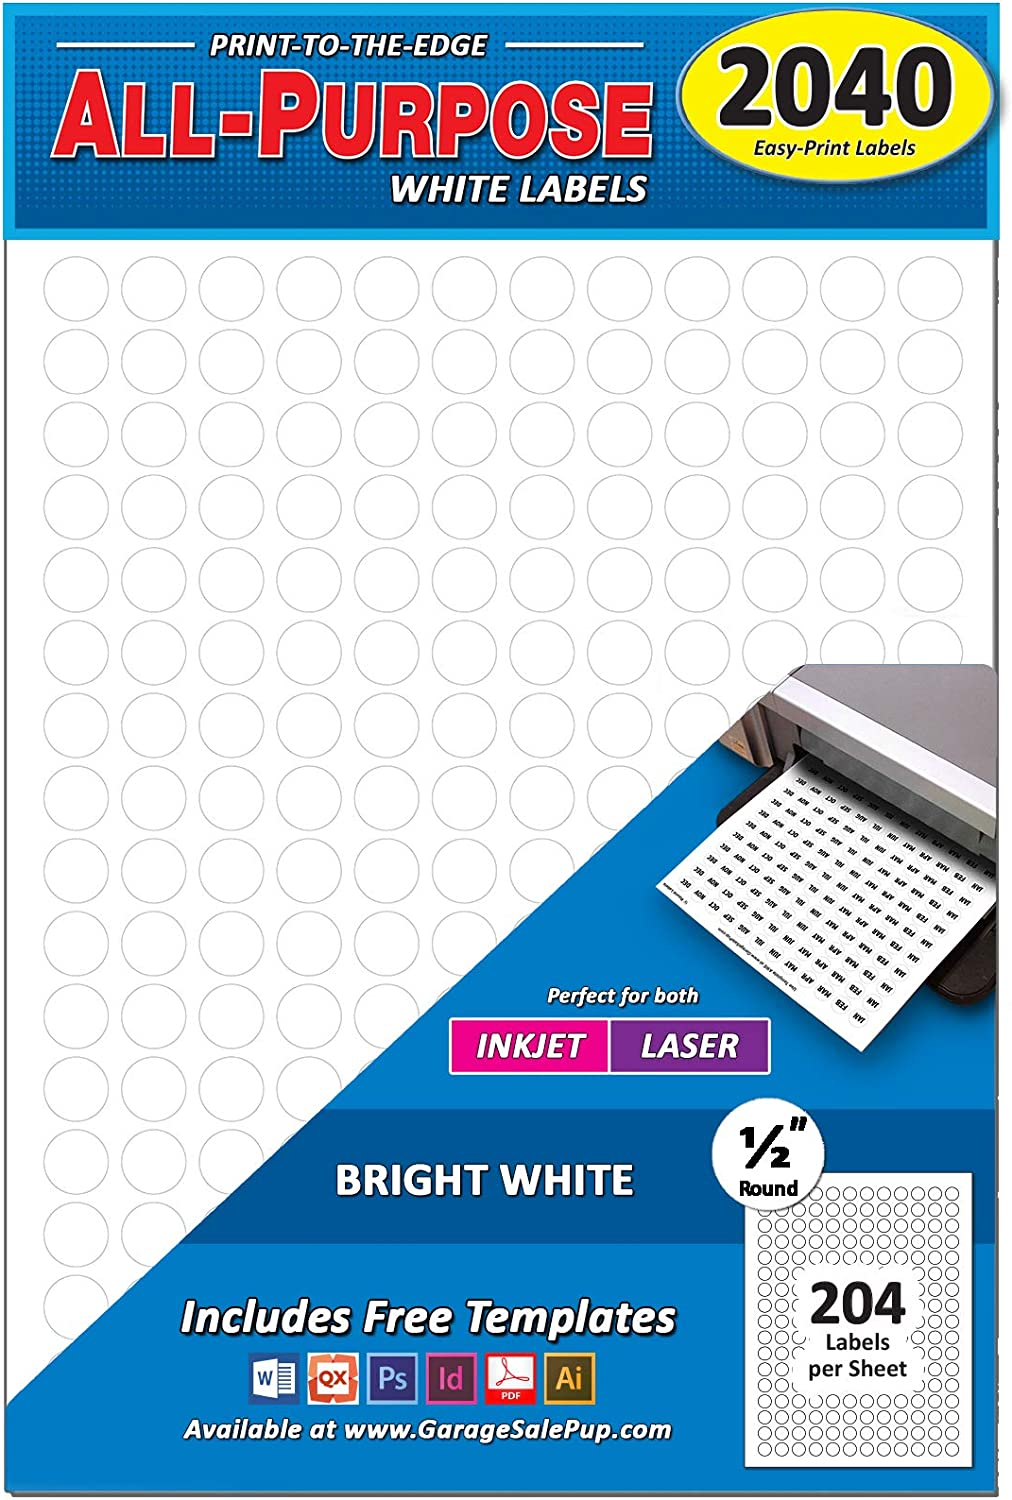 "Pack of 2040 1/2"" Round Circle Dot Labels, White, 8 1/2"" x 11"" Sheet, Fits Any Printer"